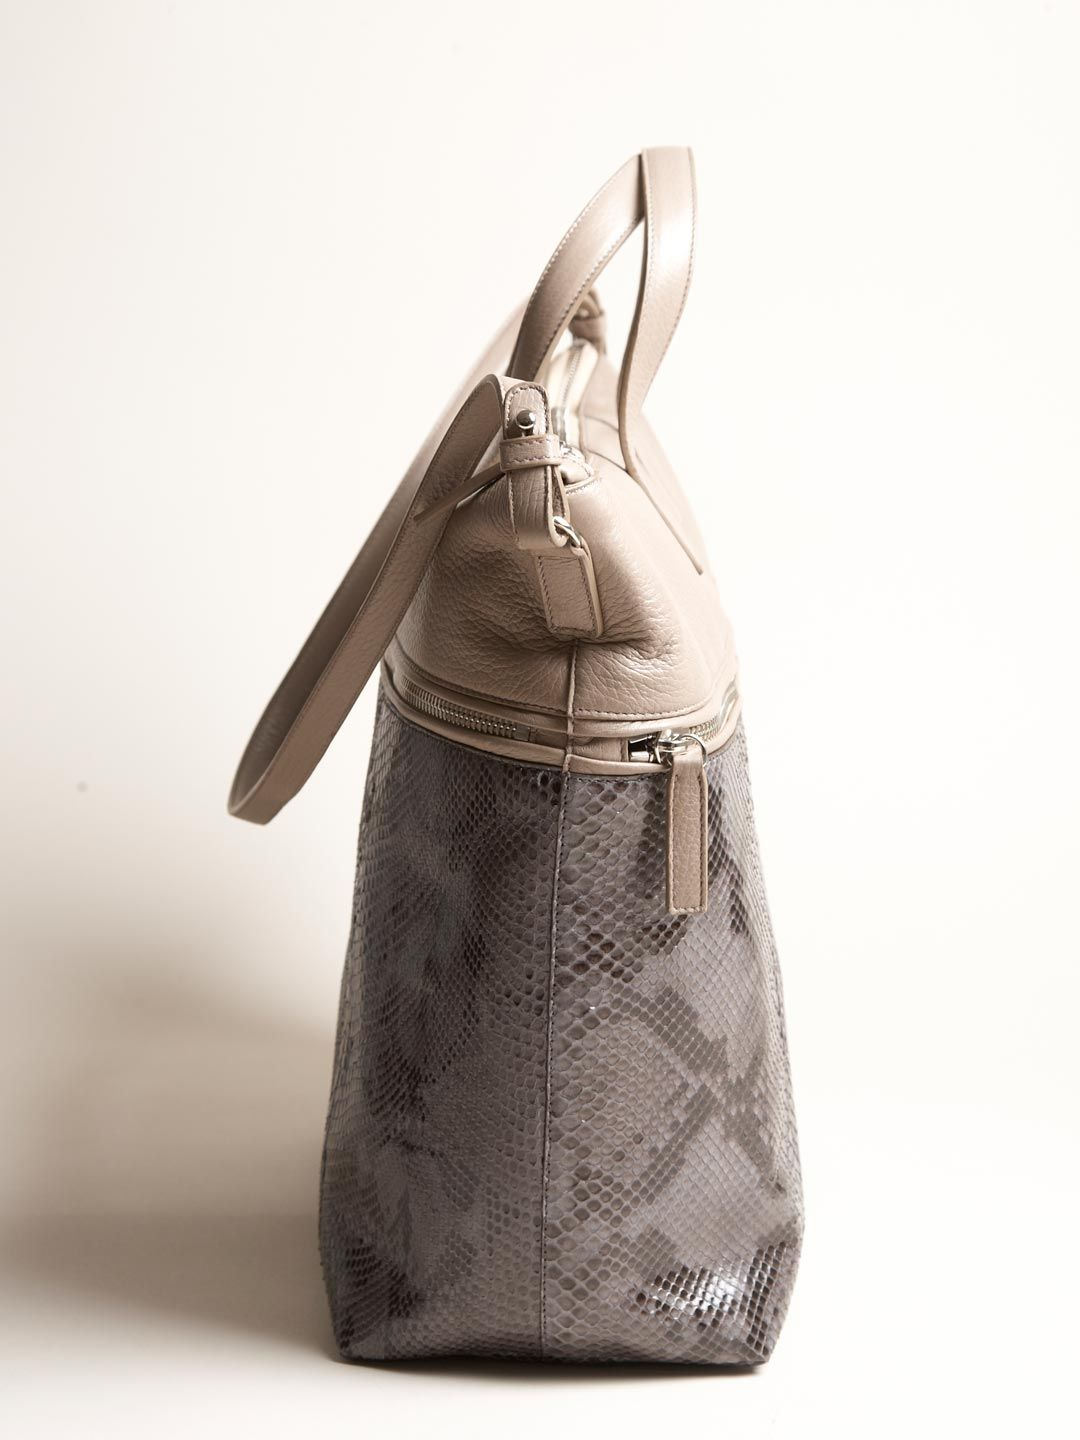 05ab6889a4a9 Jil Sander Men s Python Leather Geometric Tote is just what I want for  Christmas!